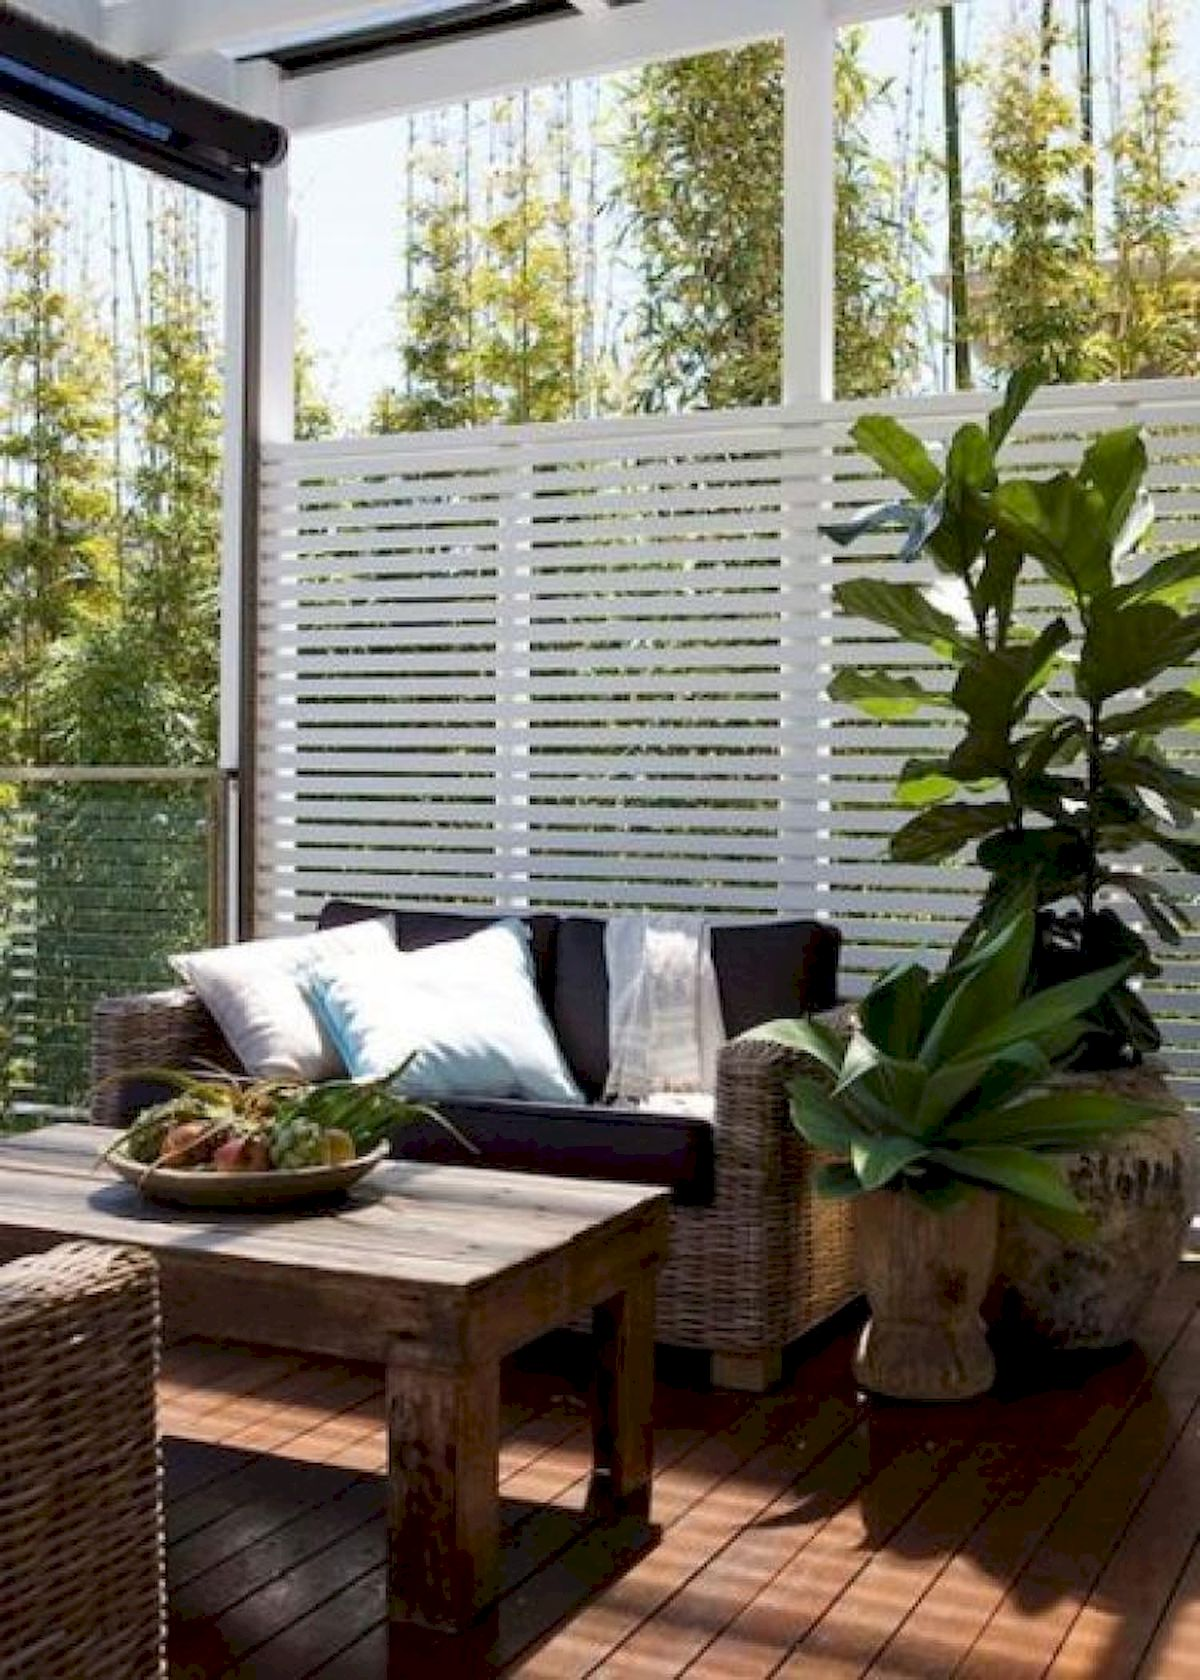 60 Awesome Backyard Privacy Design and Decor Ideas (26)